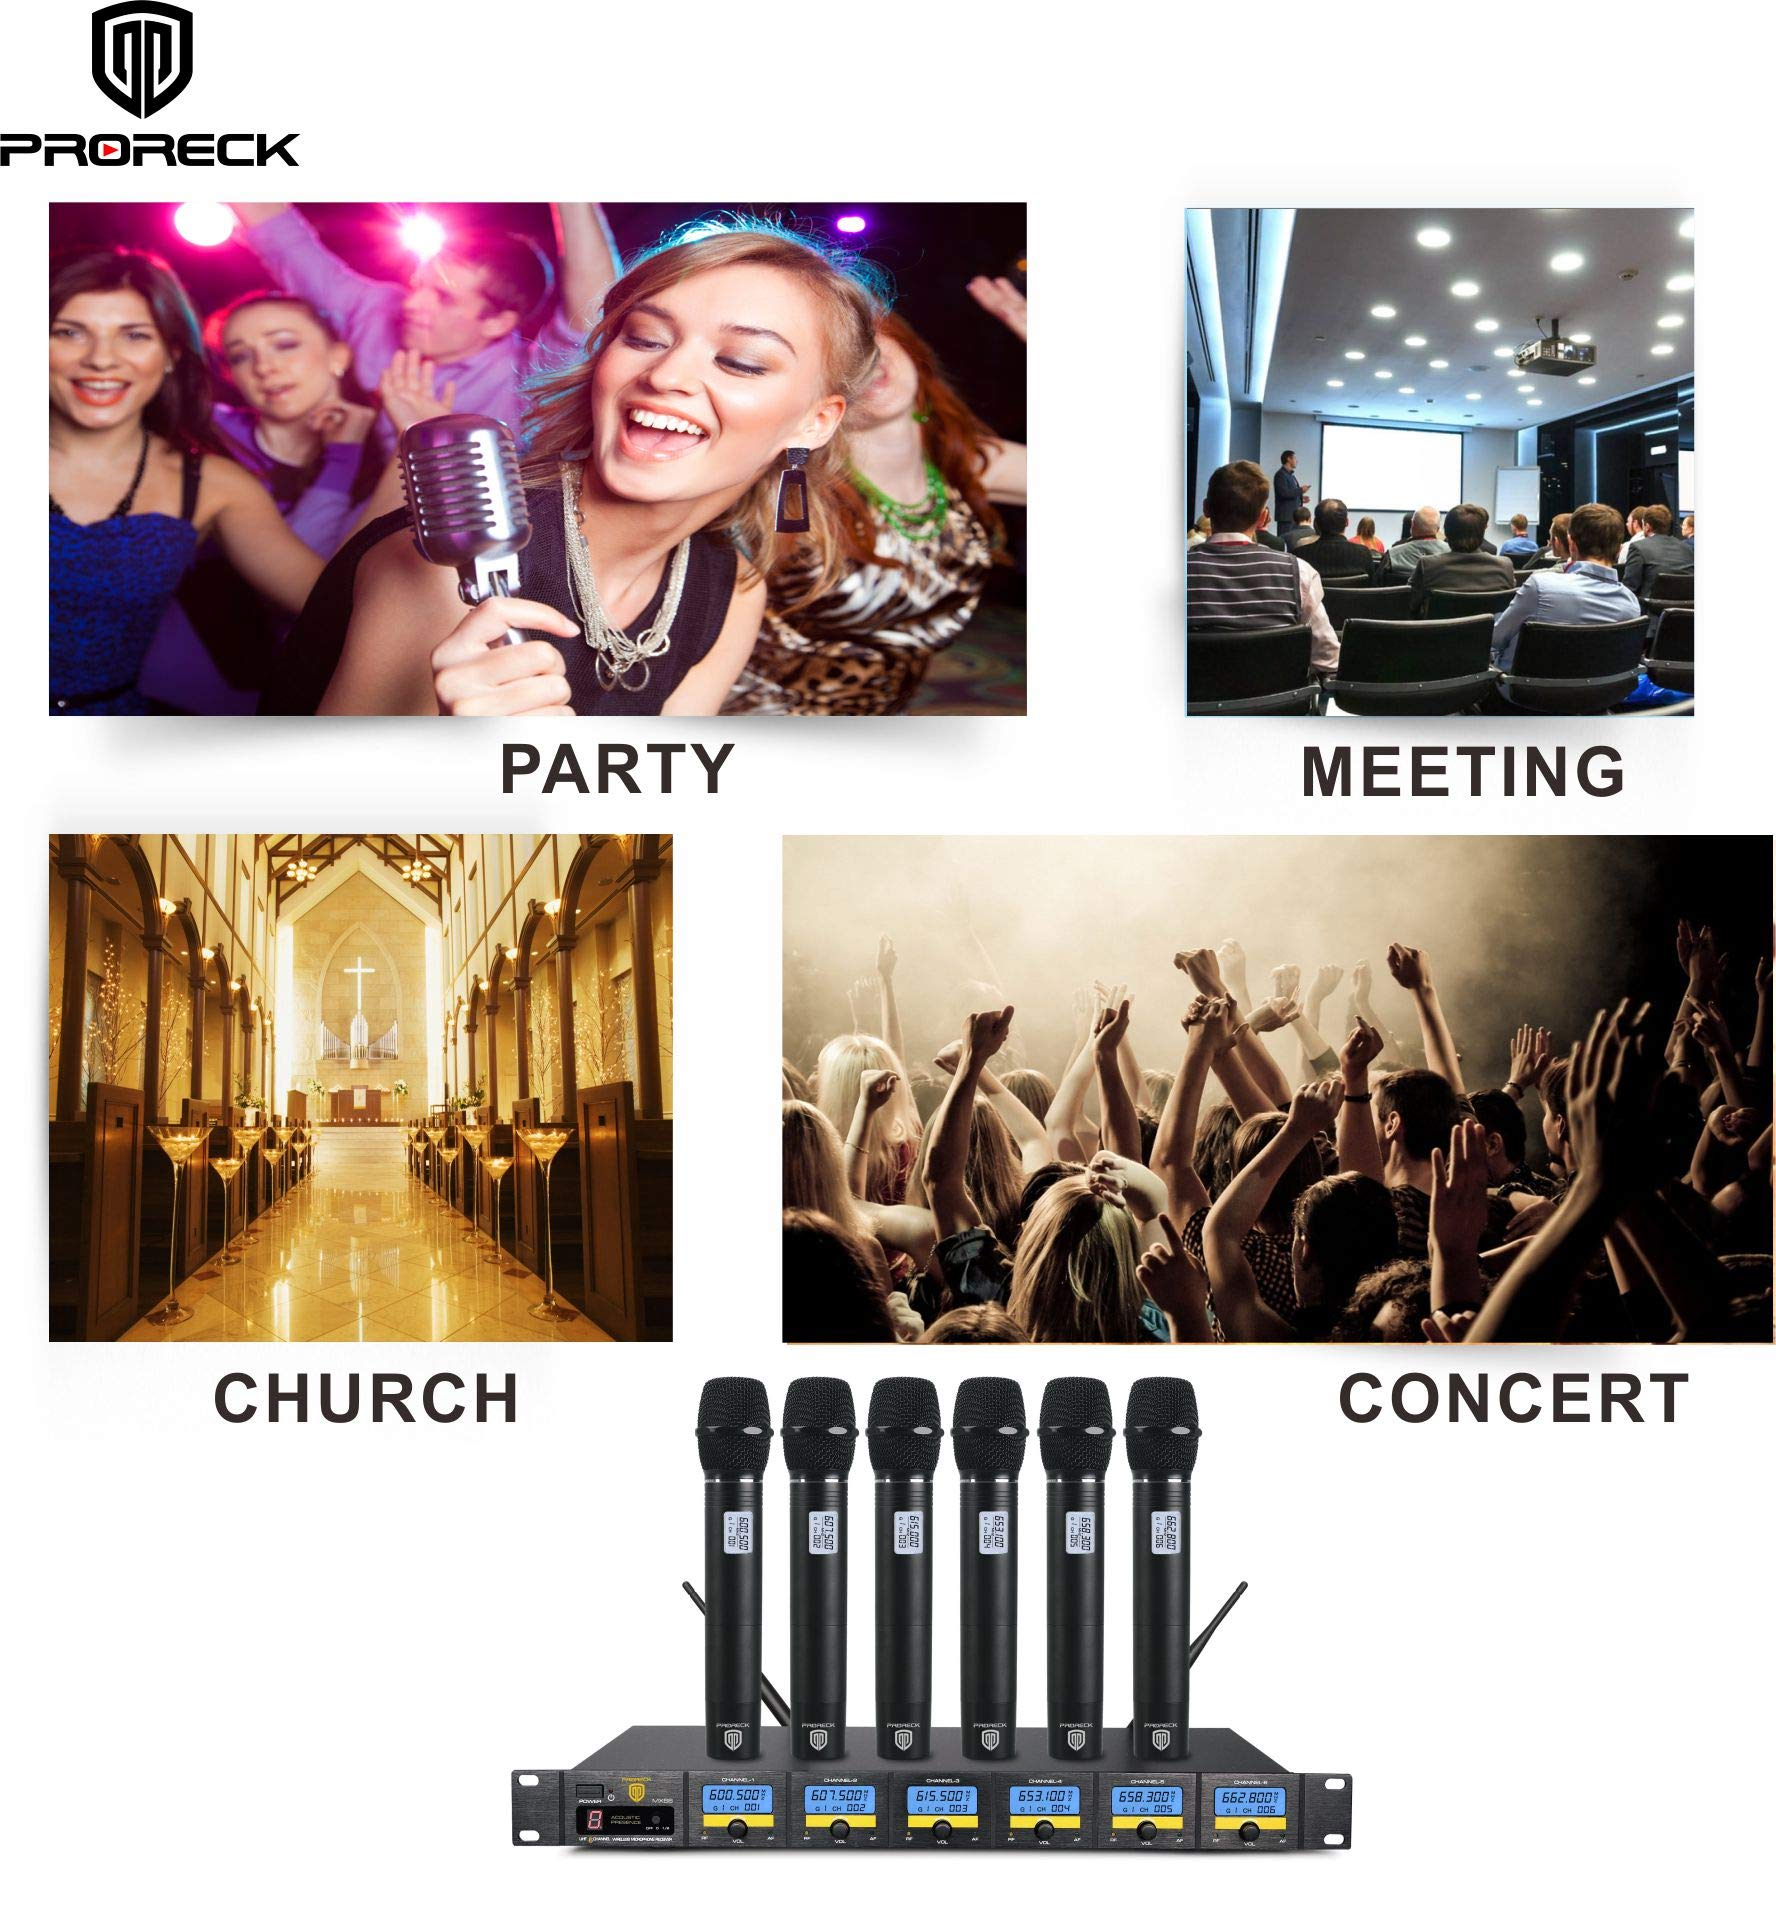 PRORECK MX66 6-Channel UHF Wireless Microphone System with 6 Hand-held Microphones Karaoke Machine for Party/Wedding/Church/Conference/Speech (New frequency) by PRORECK (Image #6)